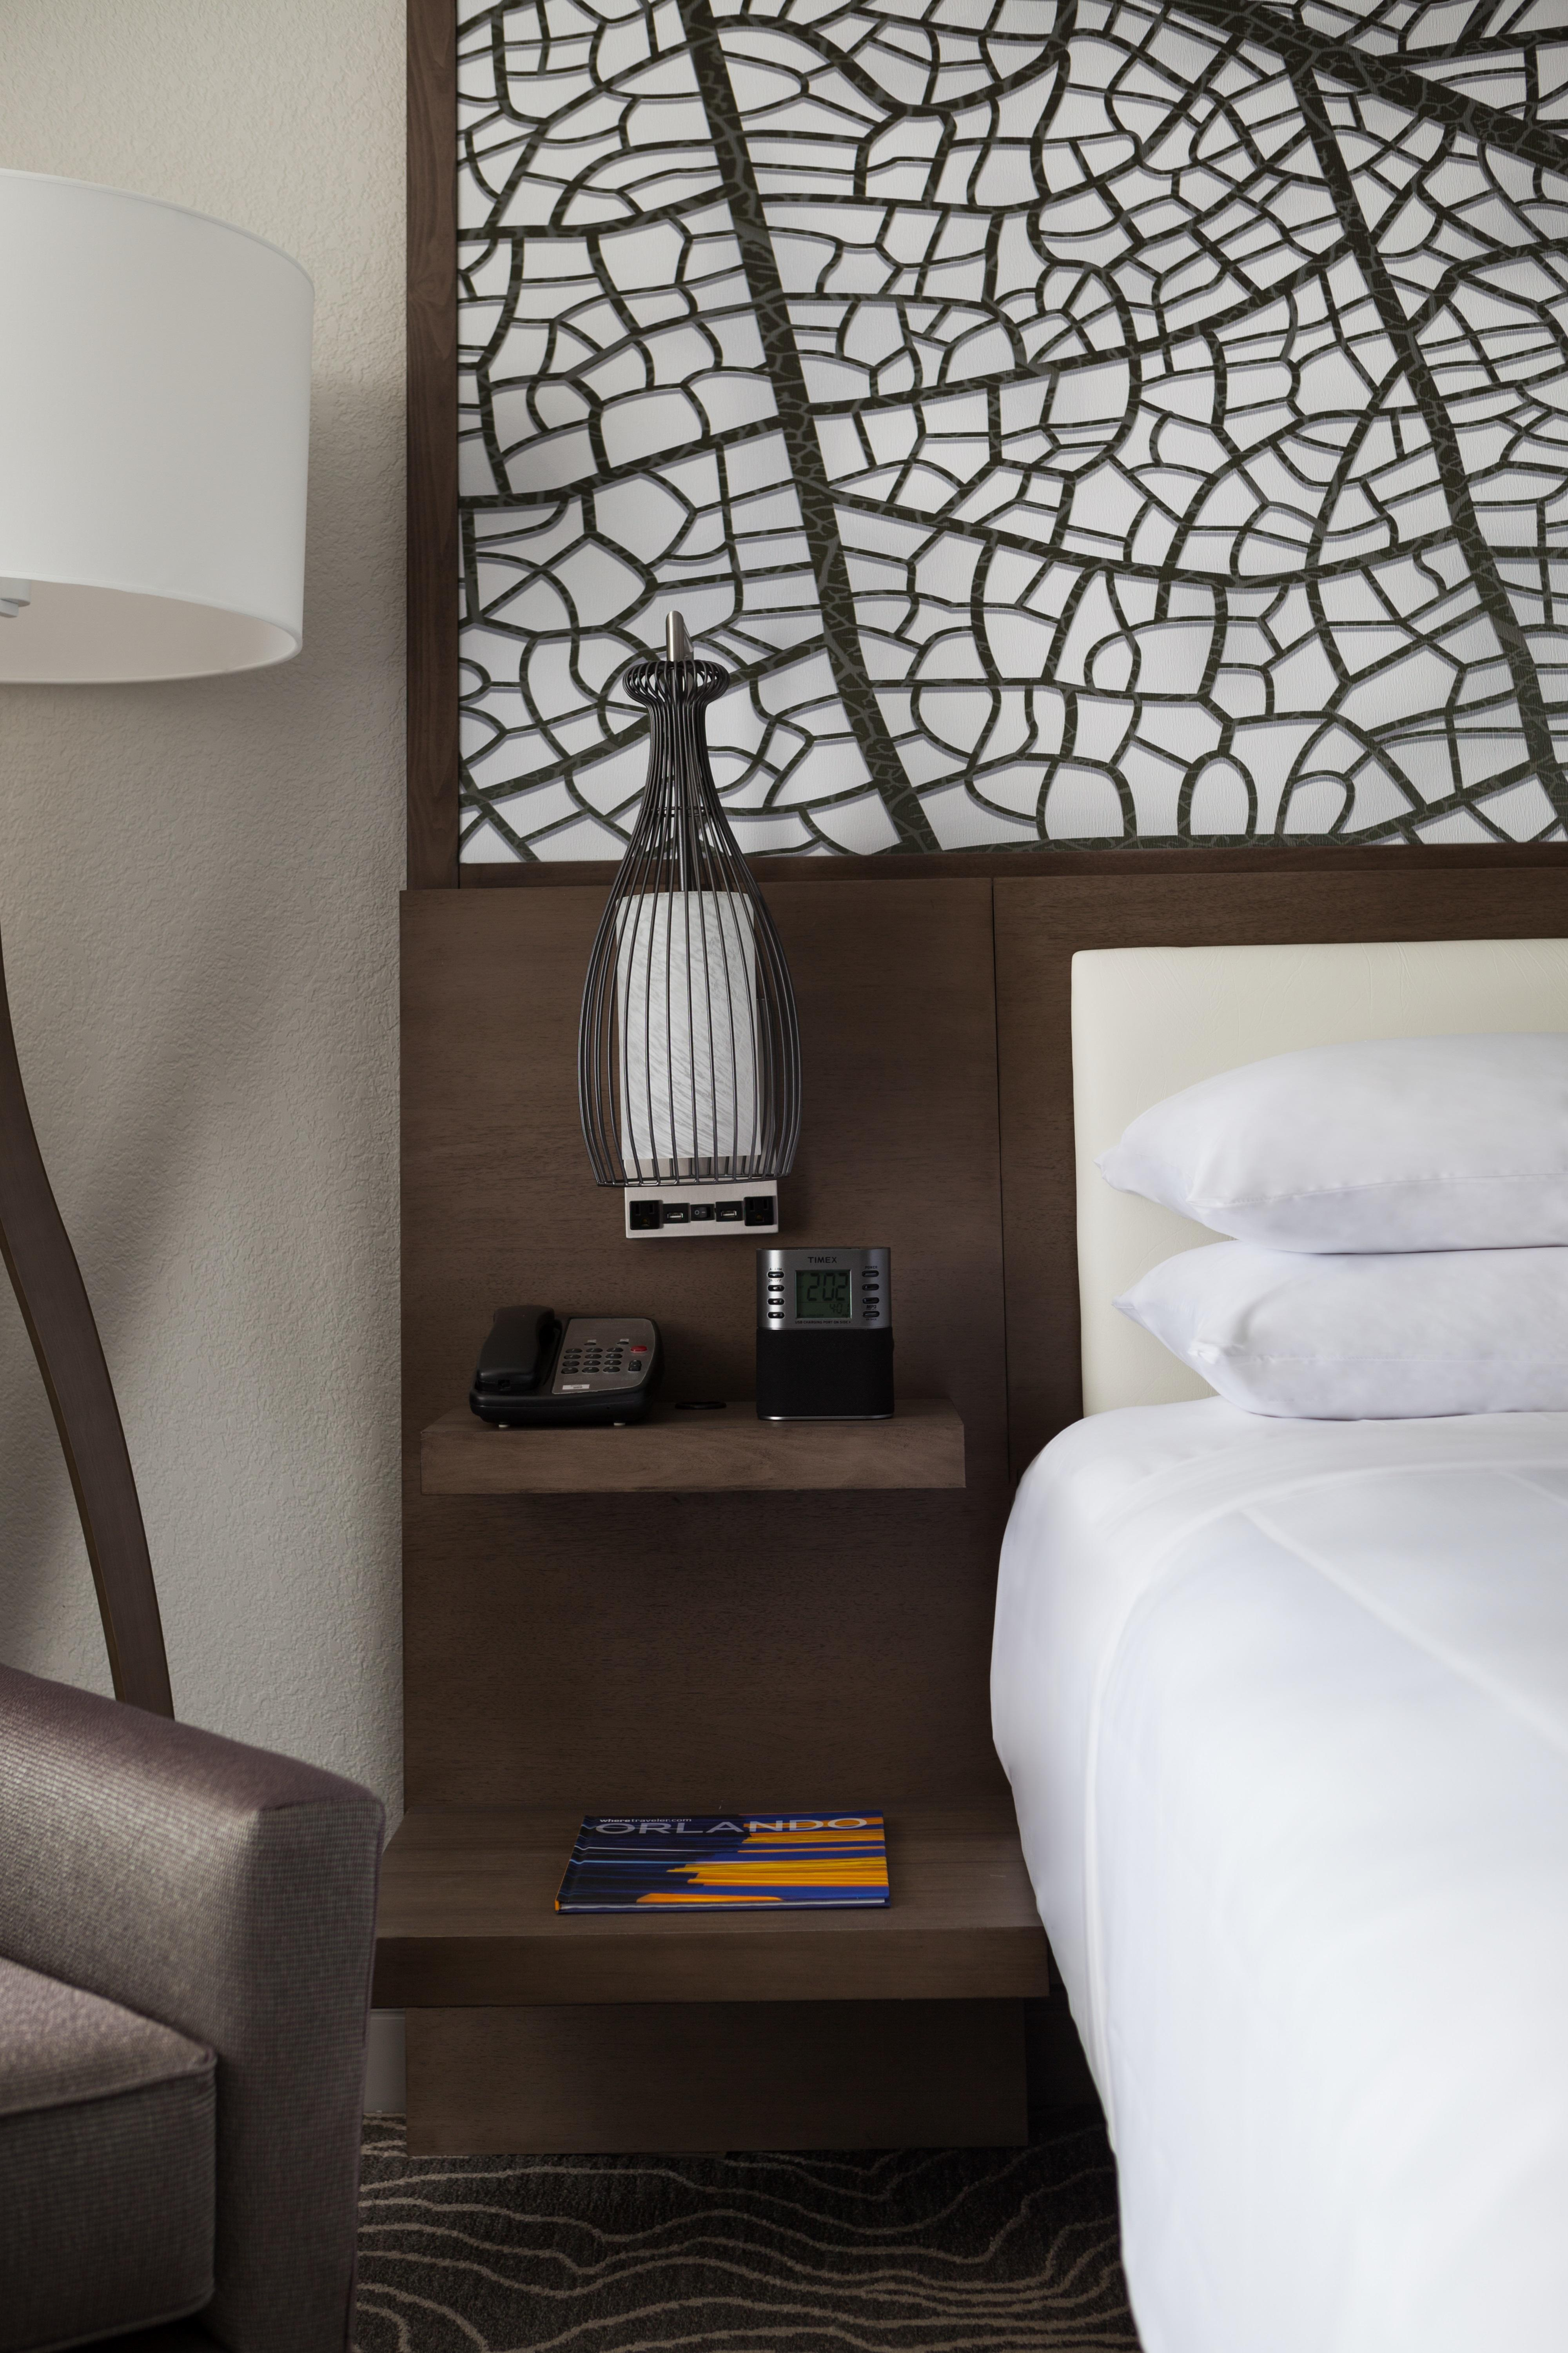 Our hotel rooms feature modern décor, lighted headboards and cutting-edge technology.